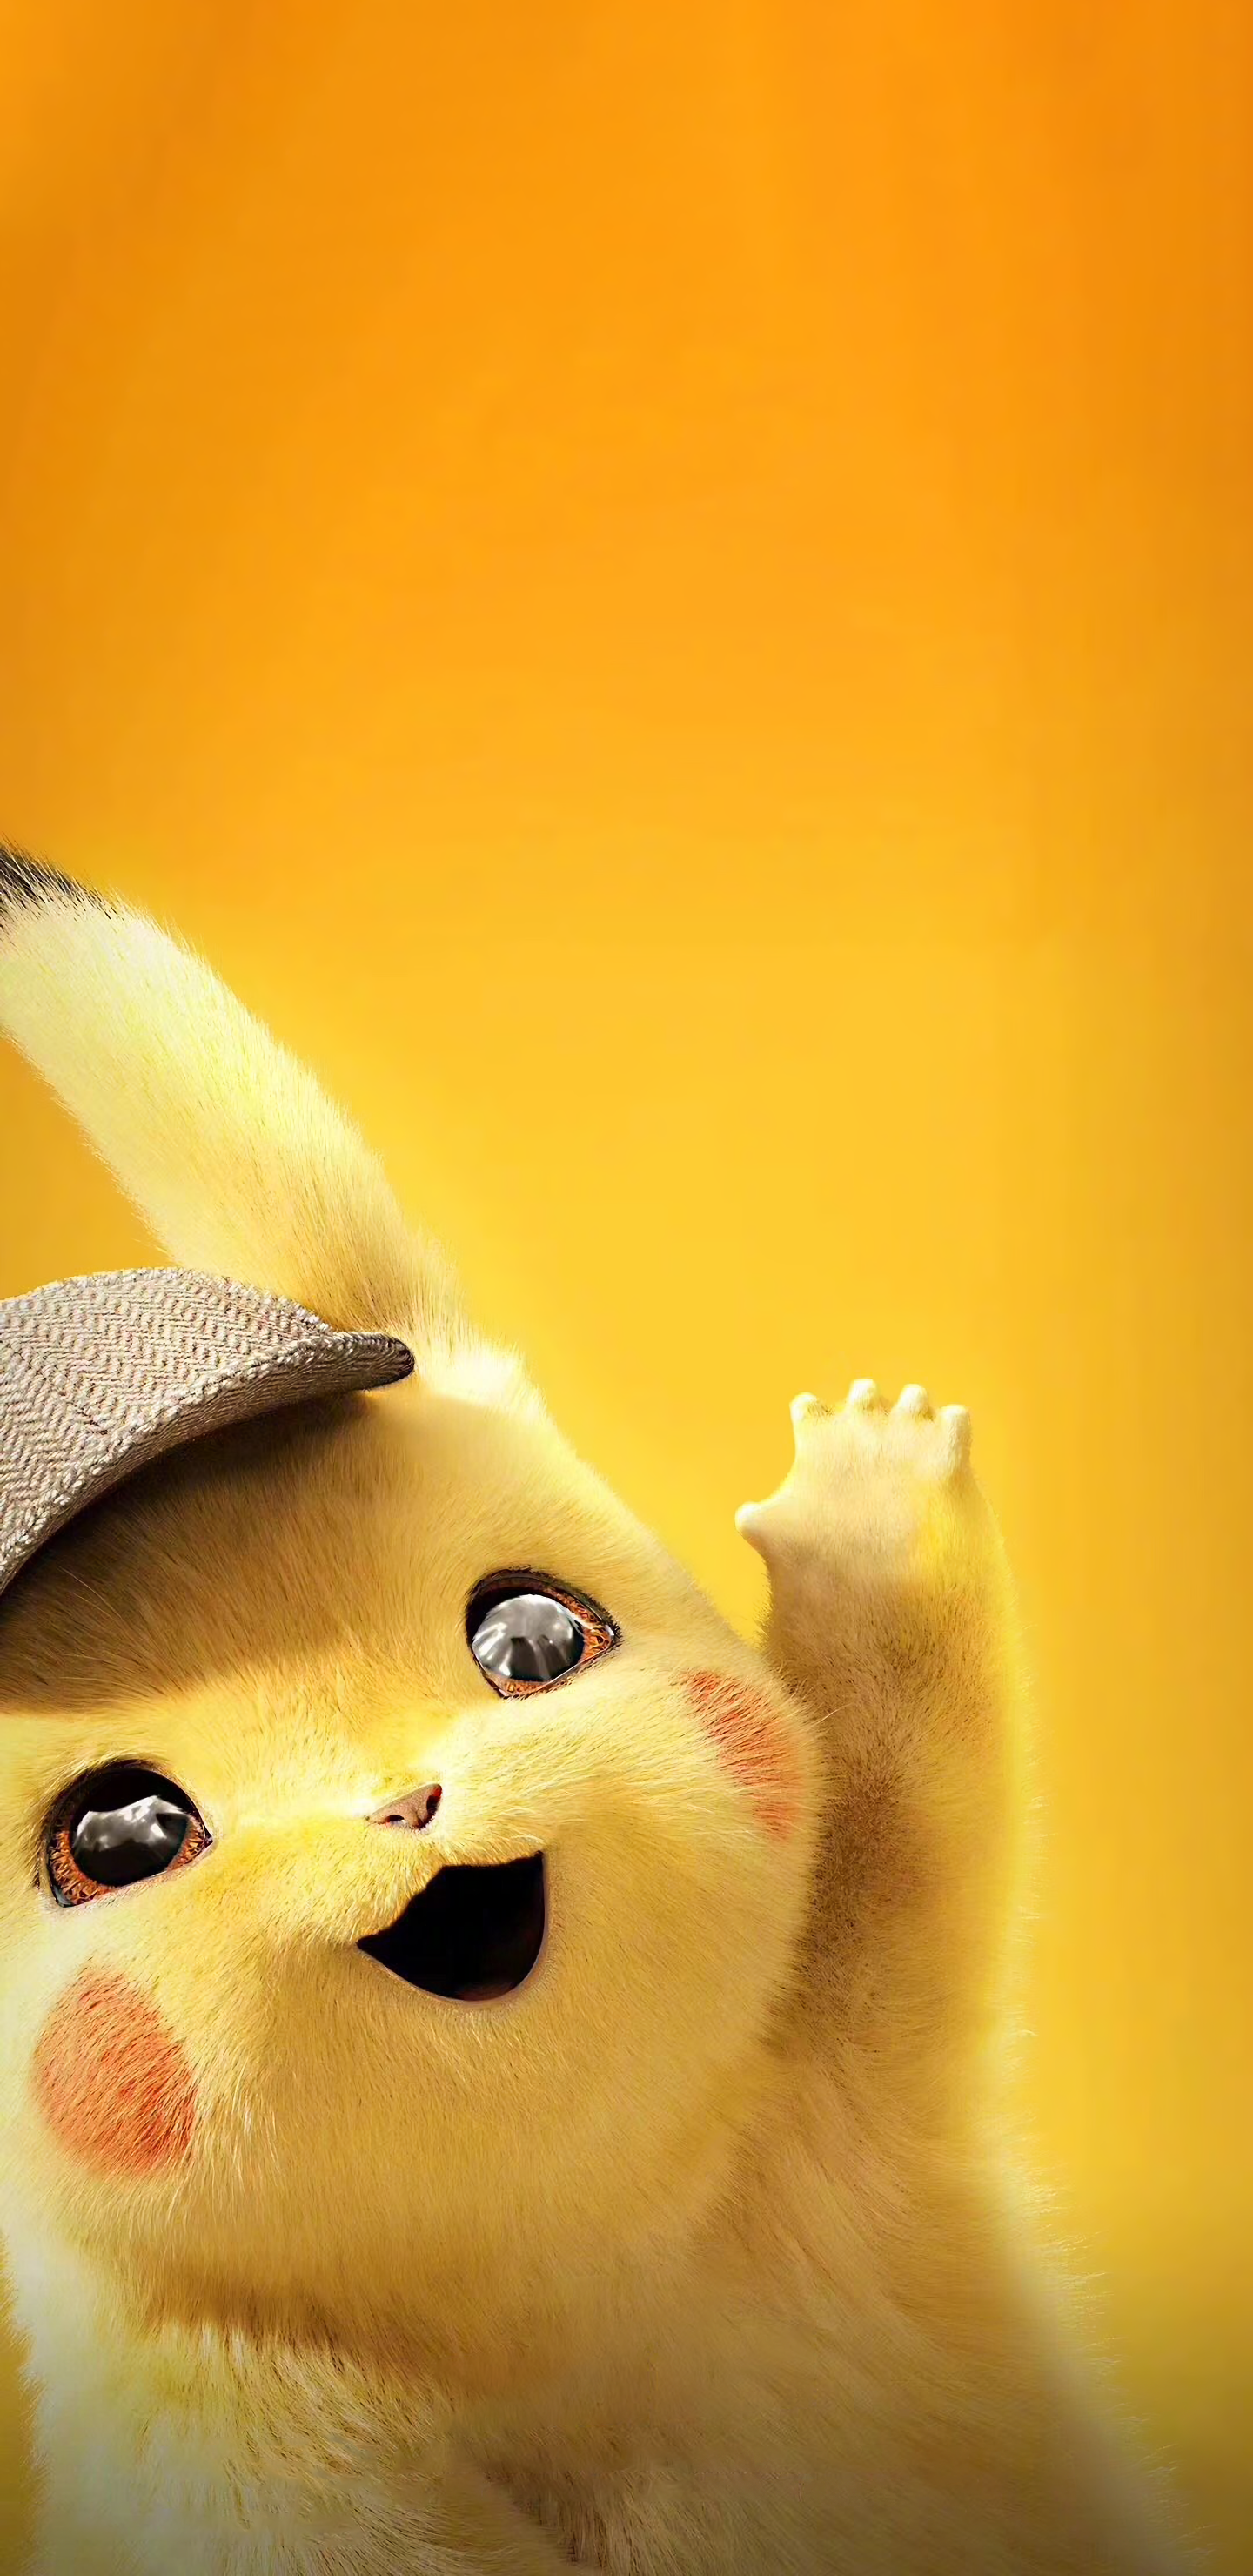 Detective Pikachu Pikachu Wallpaper Anime Wallpaper Iphone Wallpaper Iphone Cute